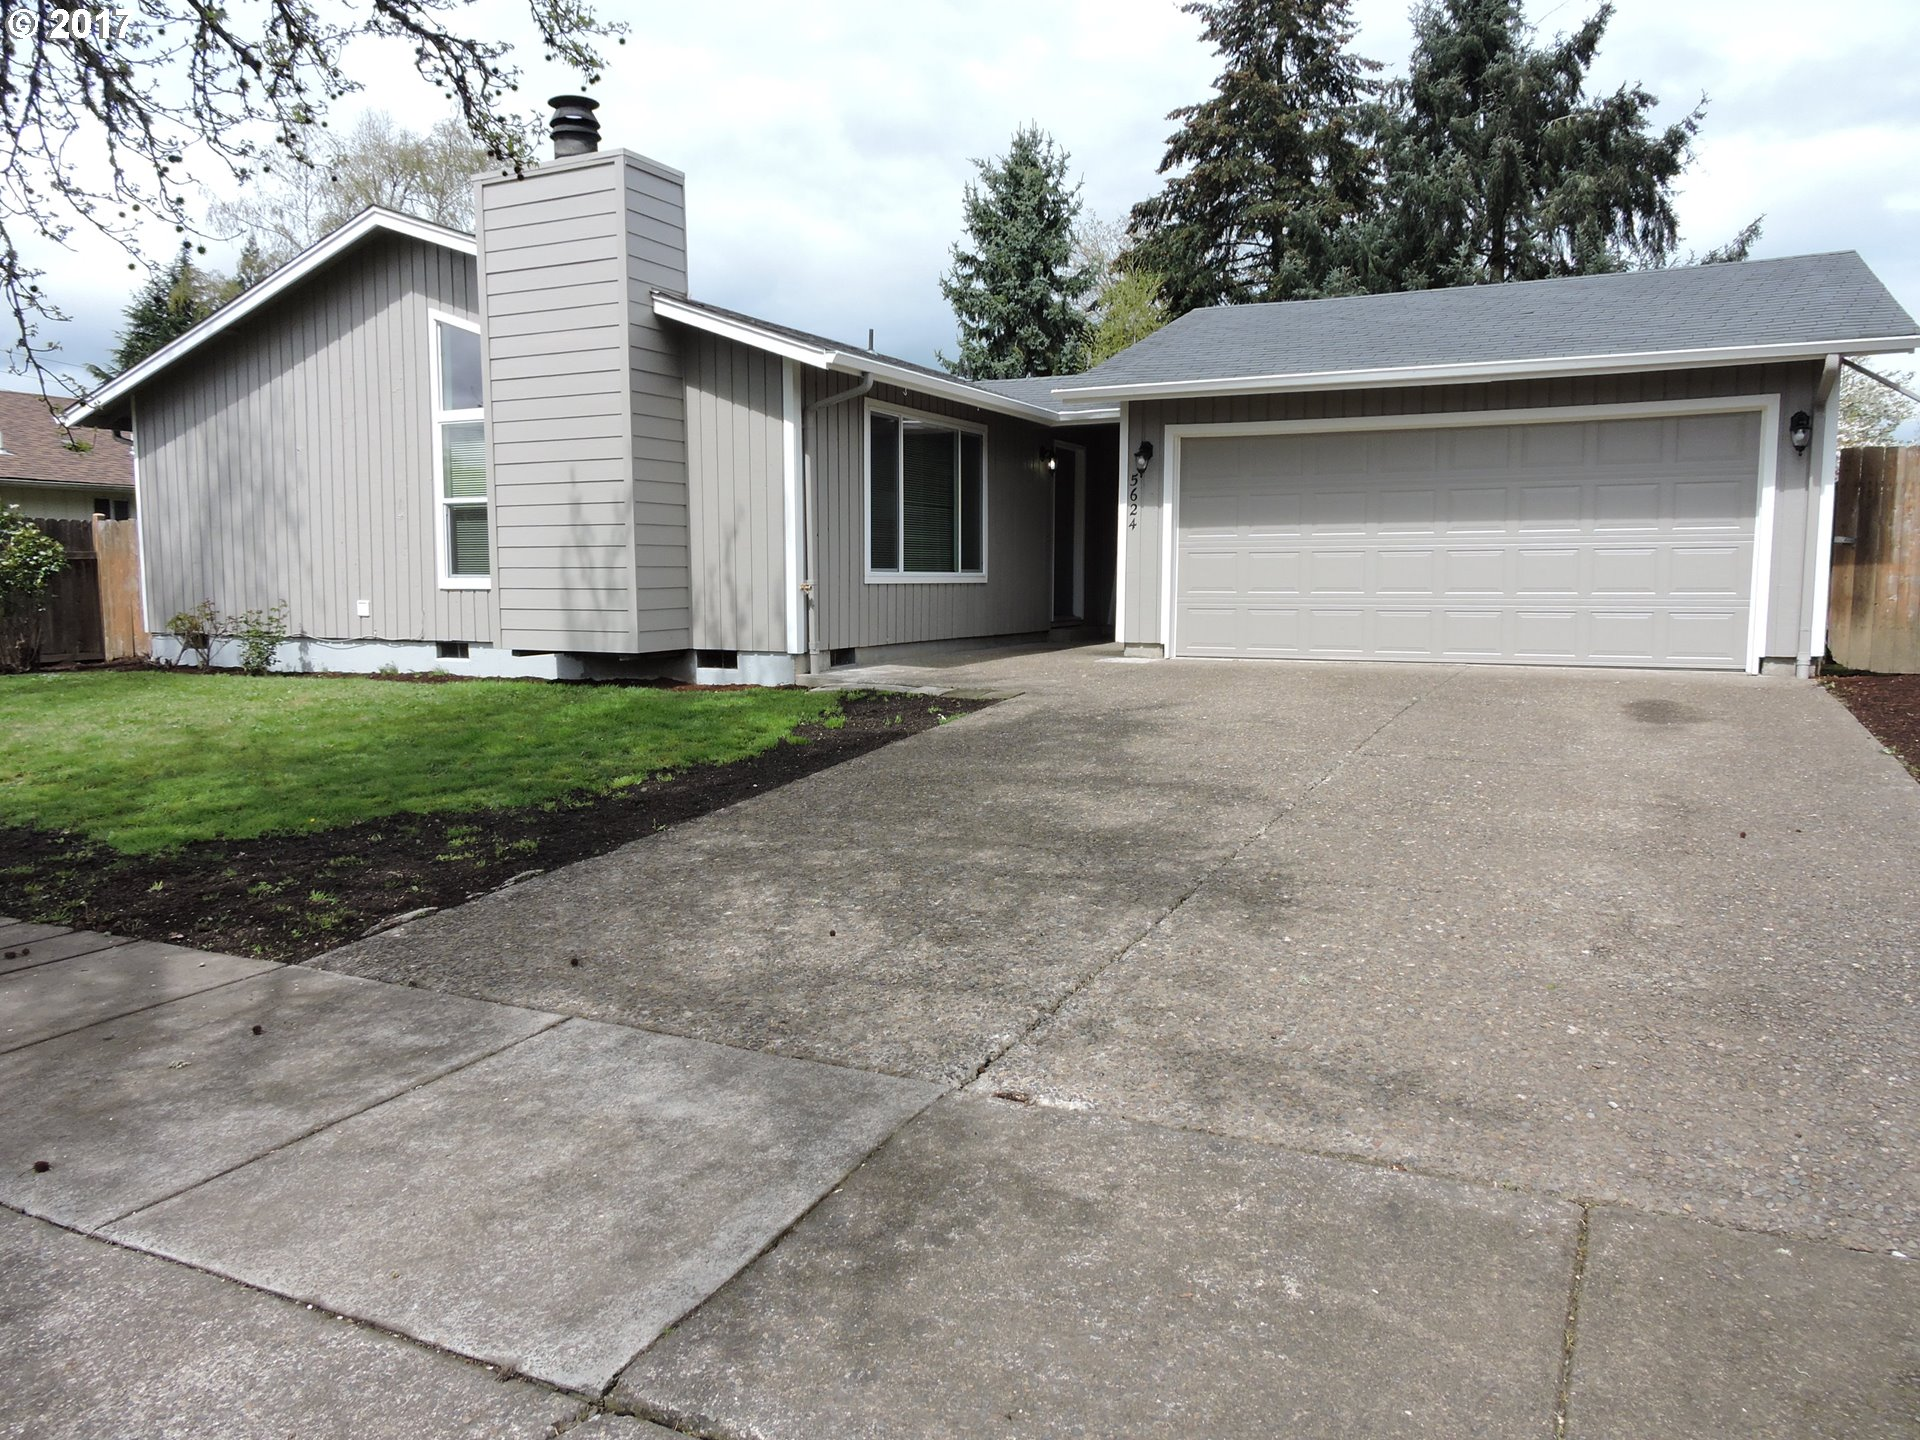 5624 C ST, Springfield, OR 97478